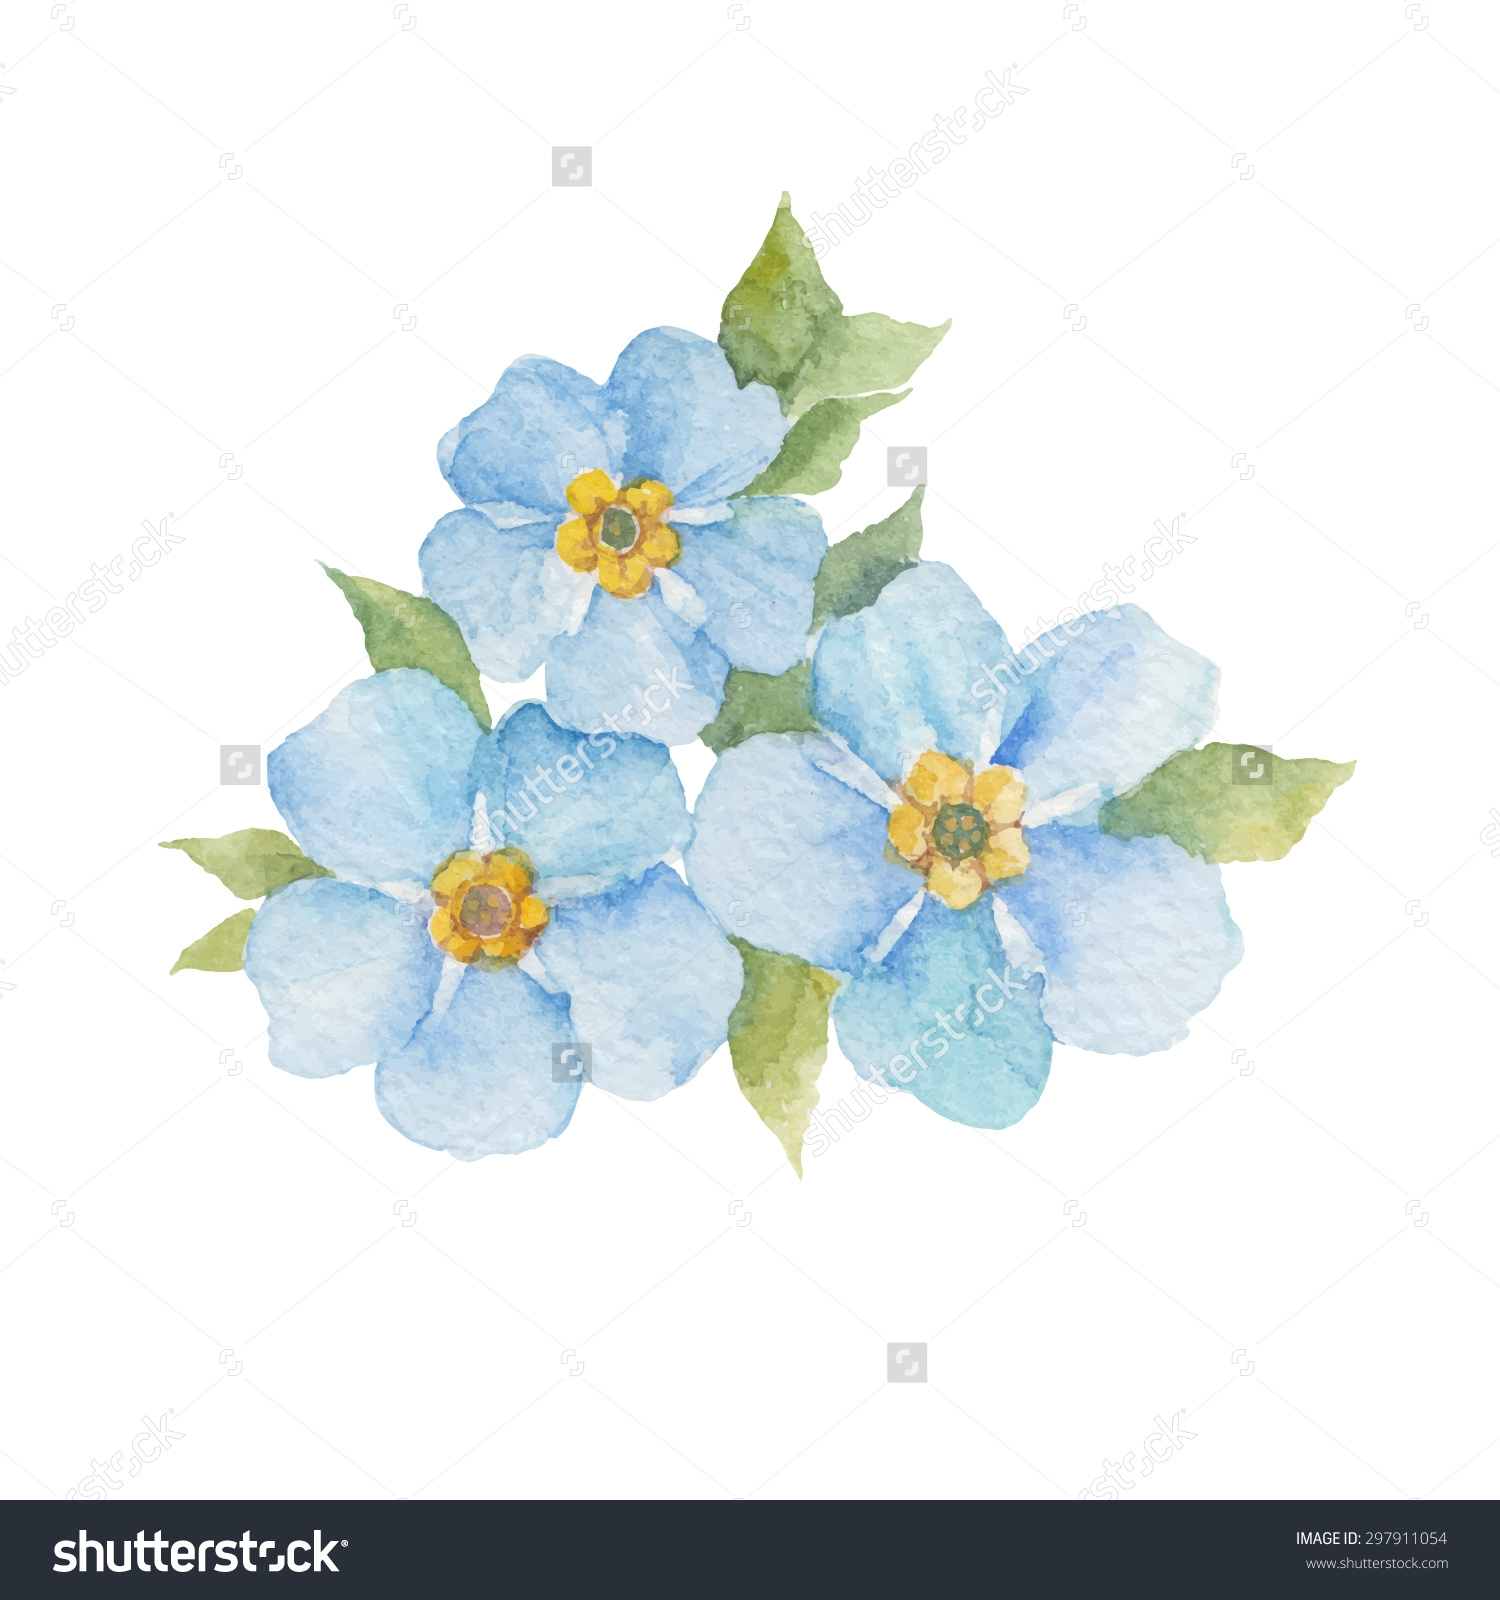 Forget Me Not Flowers Clipart.